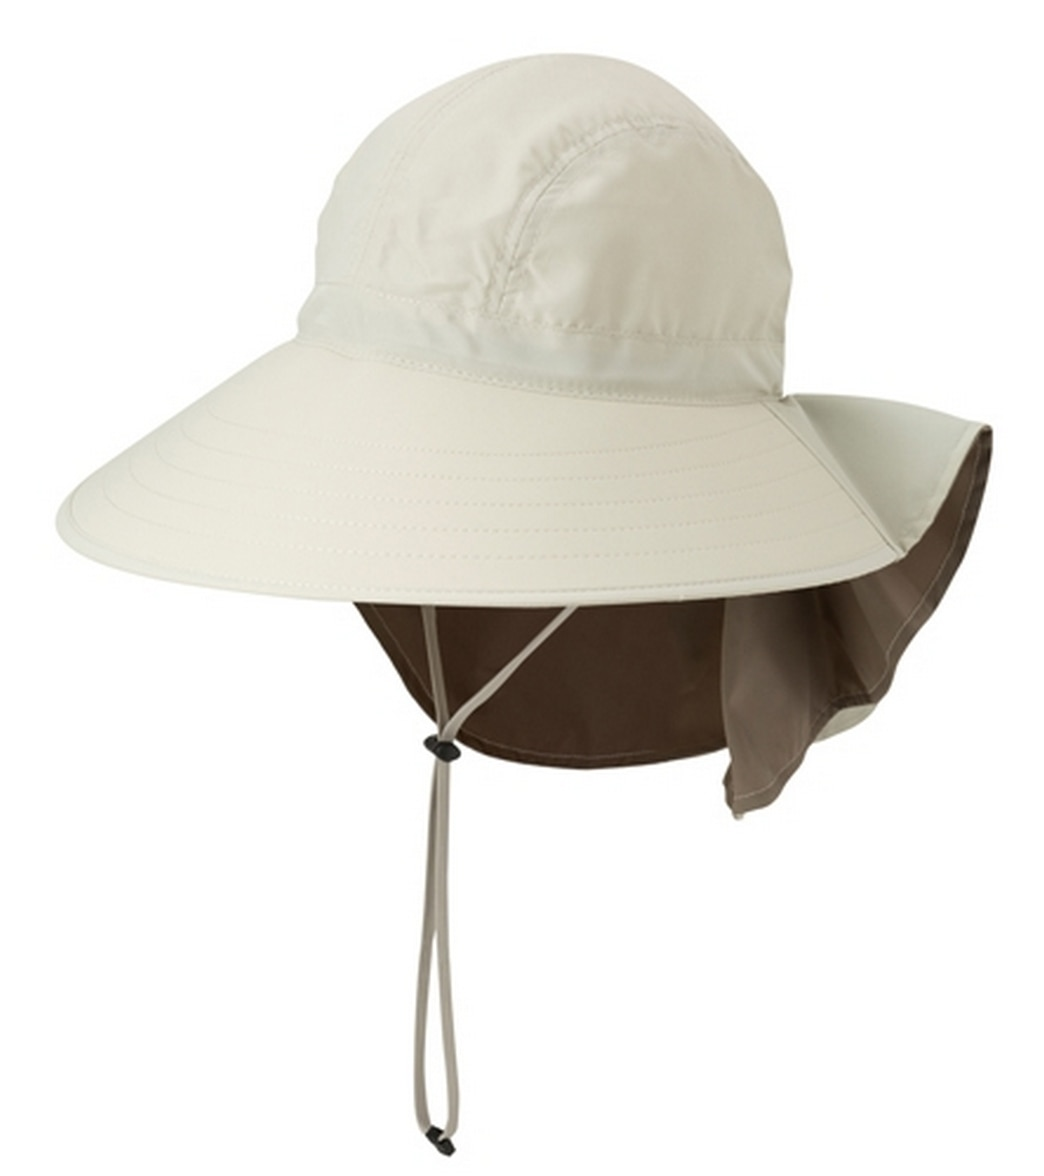 32ff5a71225 Sunday Afternoons Women s Sundancer Hat at SwimOutlet.com